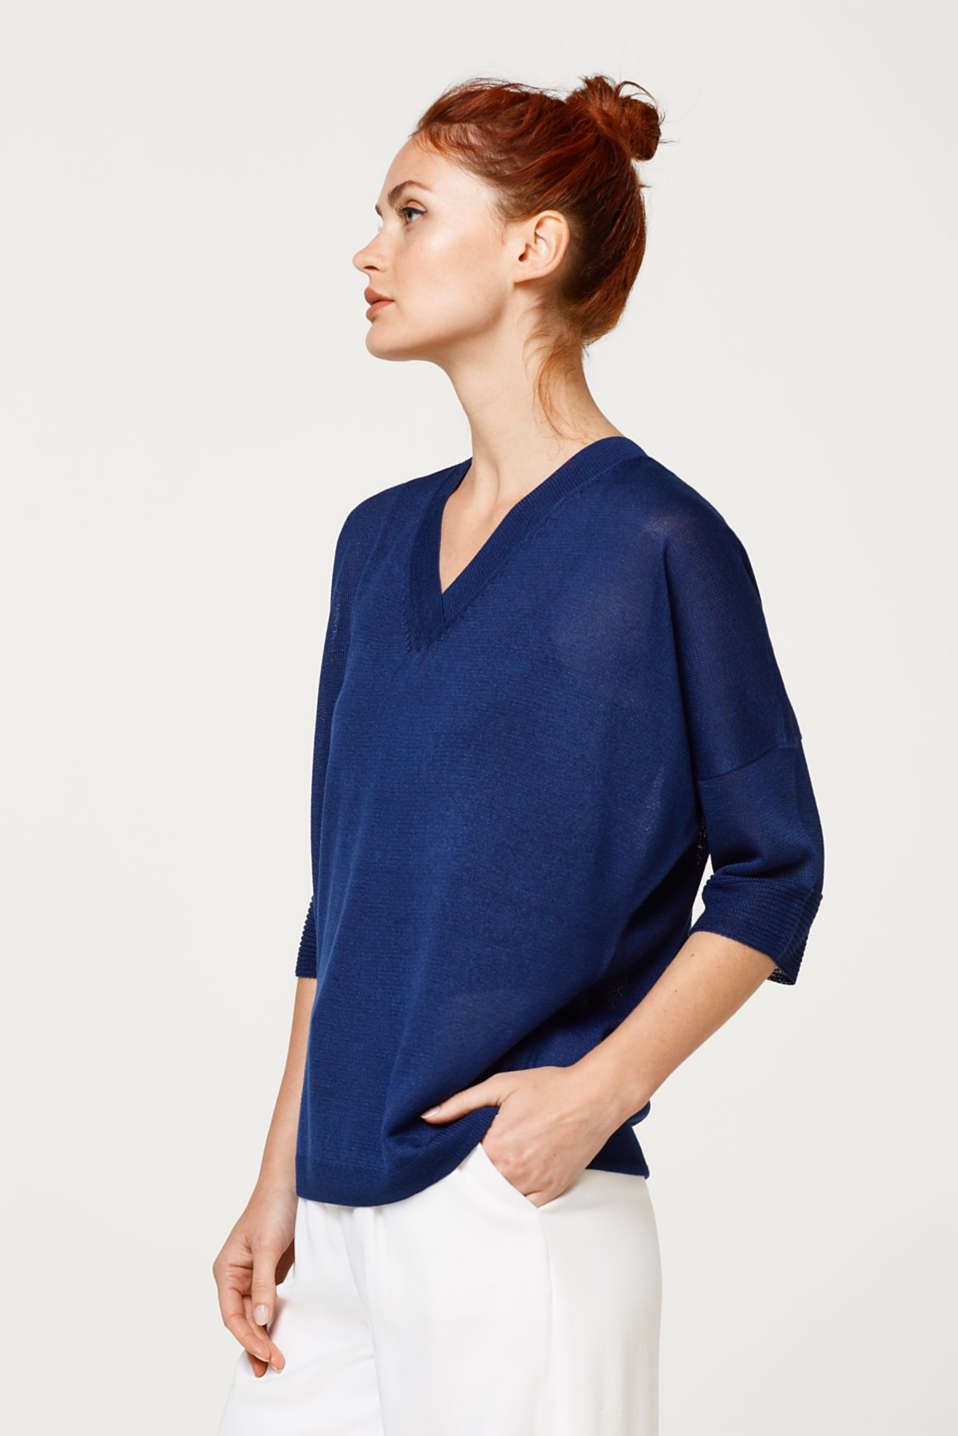 Esprit - Decorative back detail jumper